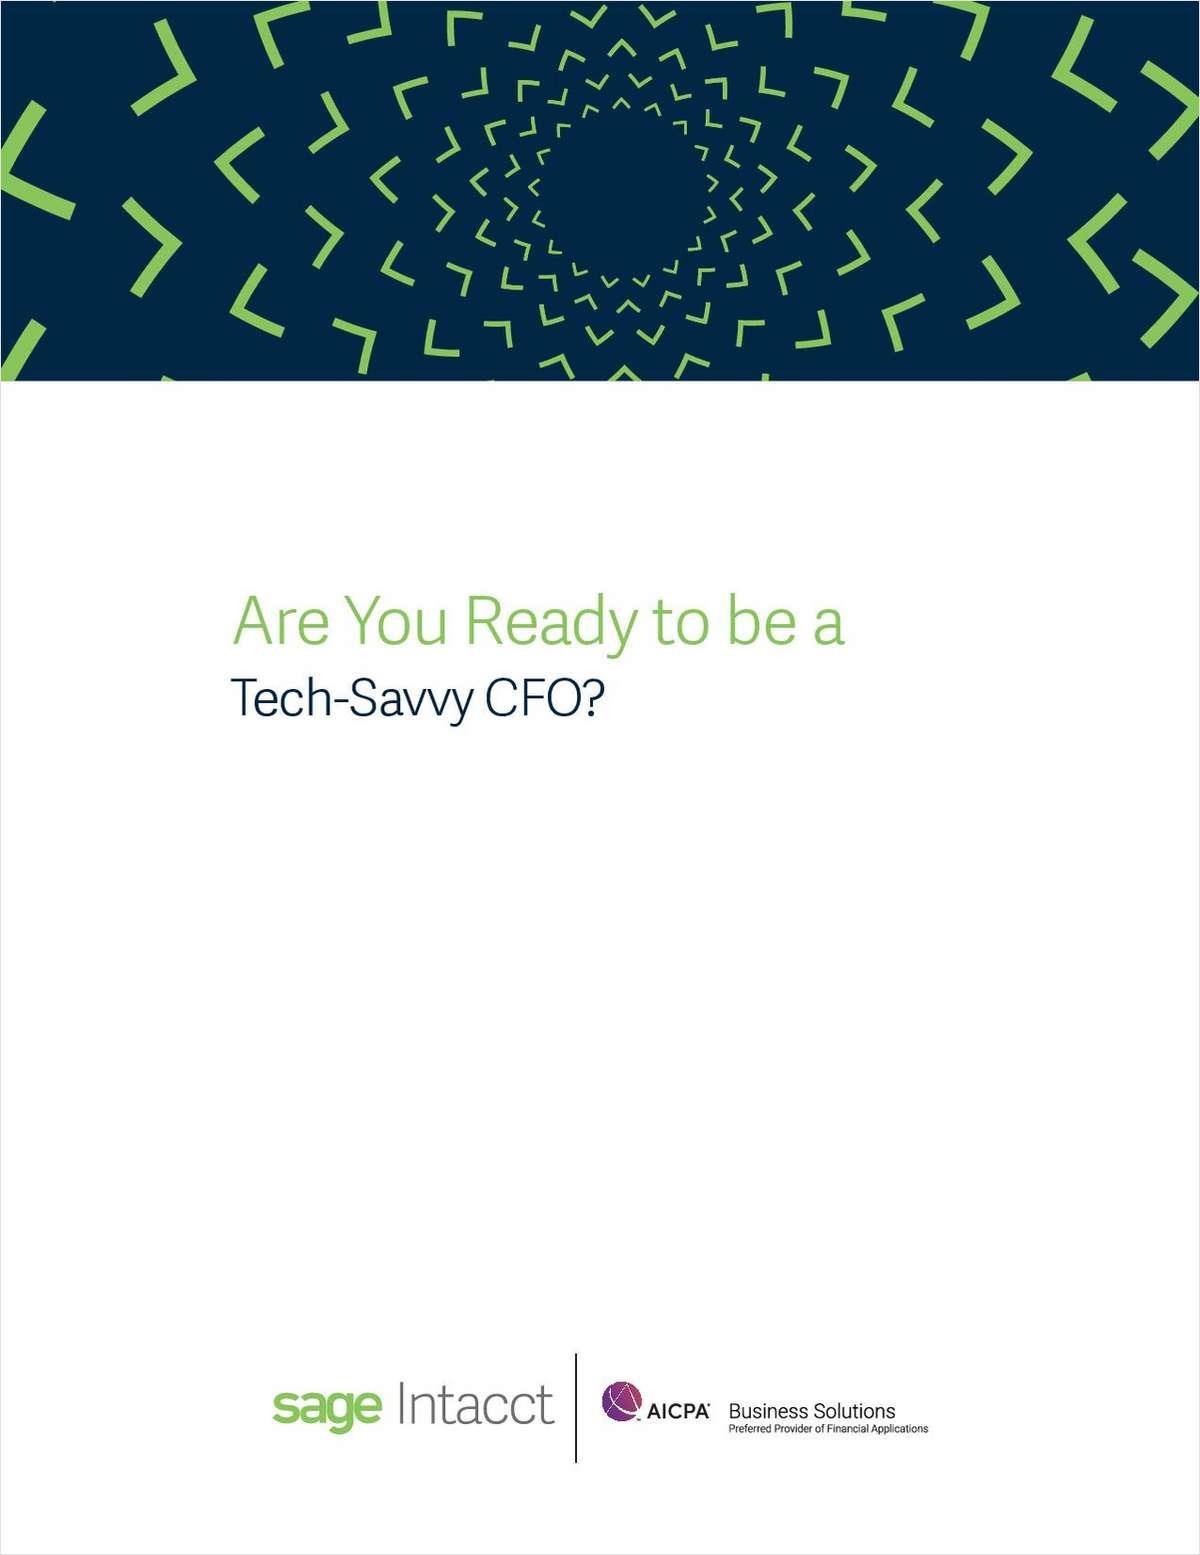 Are You Ready to be a Tech-Savvy CFO?